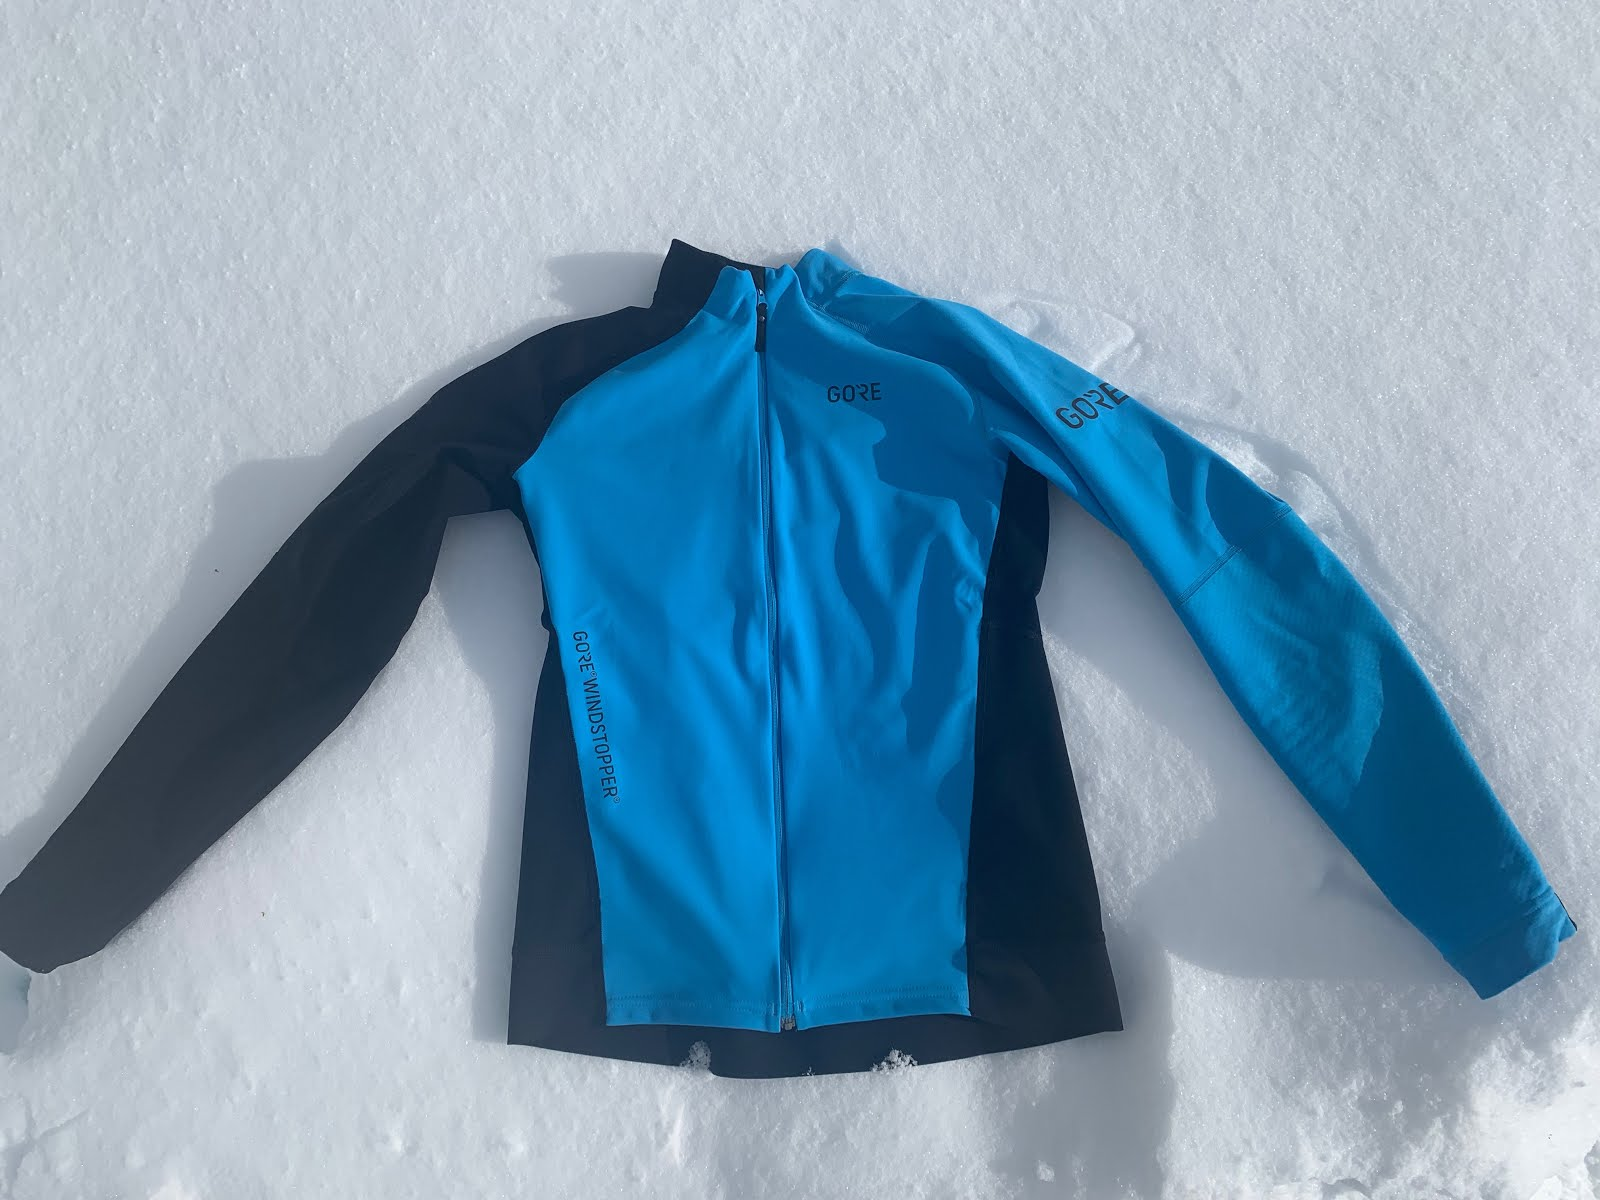 ebb3b6e8efc64 Windstopper itself is not particularly stretchable as it includes a Gore  membrane. The Long Sleeve Shirt fits snug over the chest and front of arms  to the ...